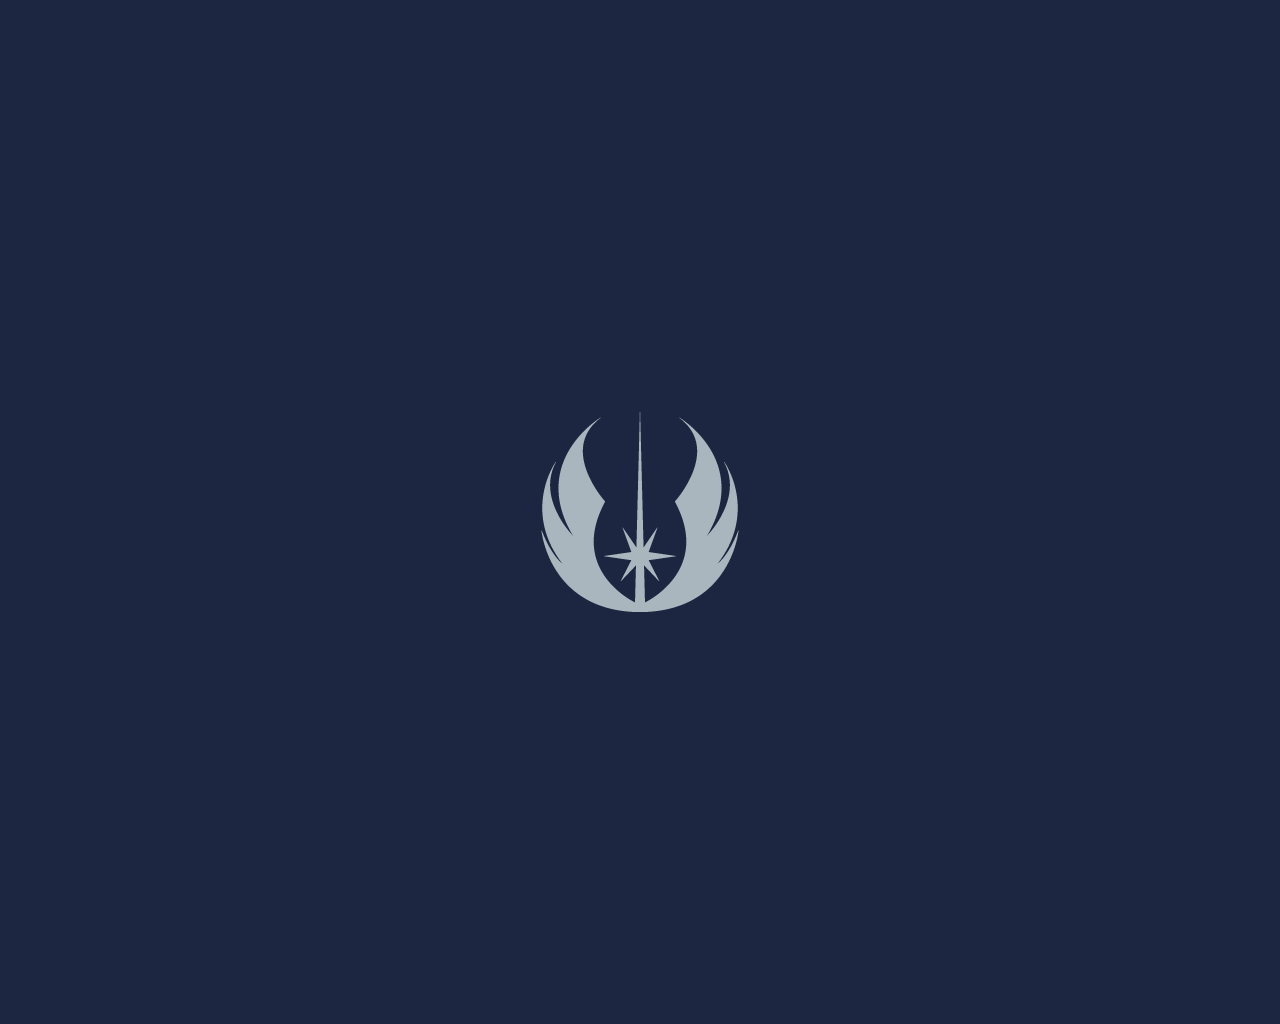 star wars wallpaper jedi emblem by diros customization wallpaper 1280x1024